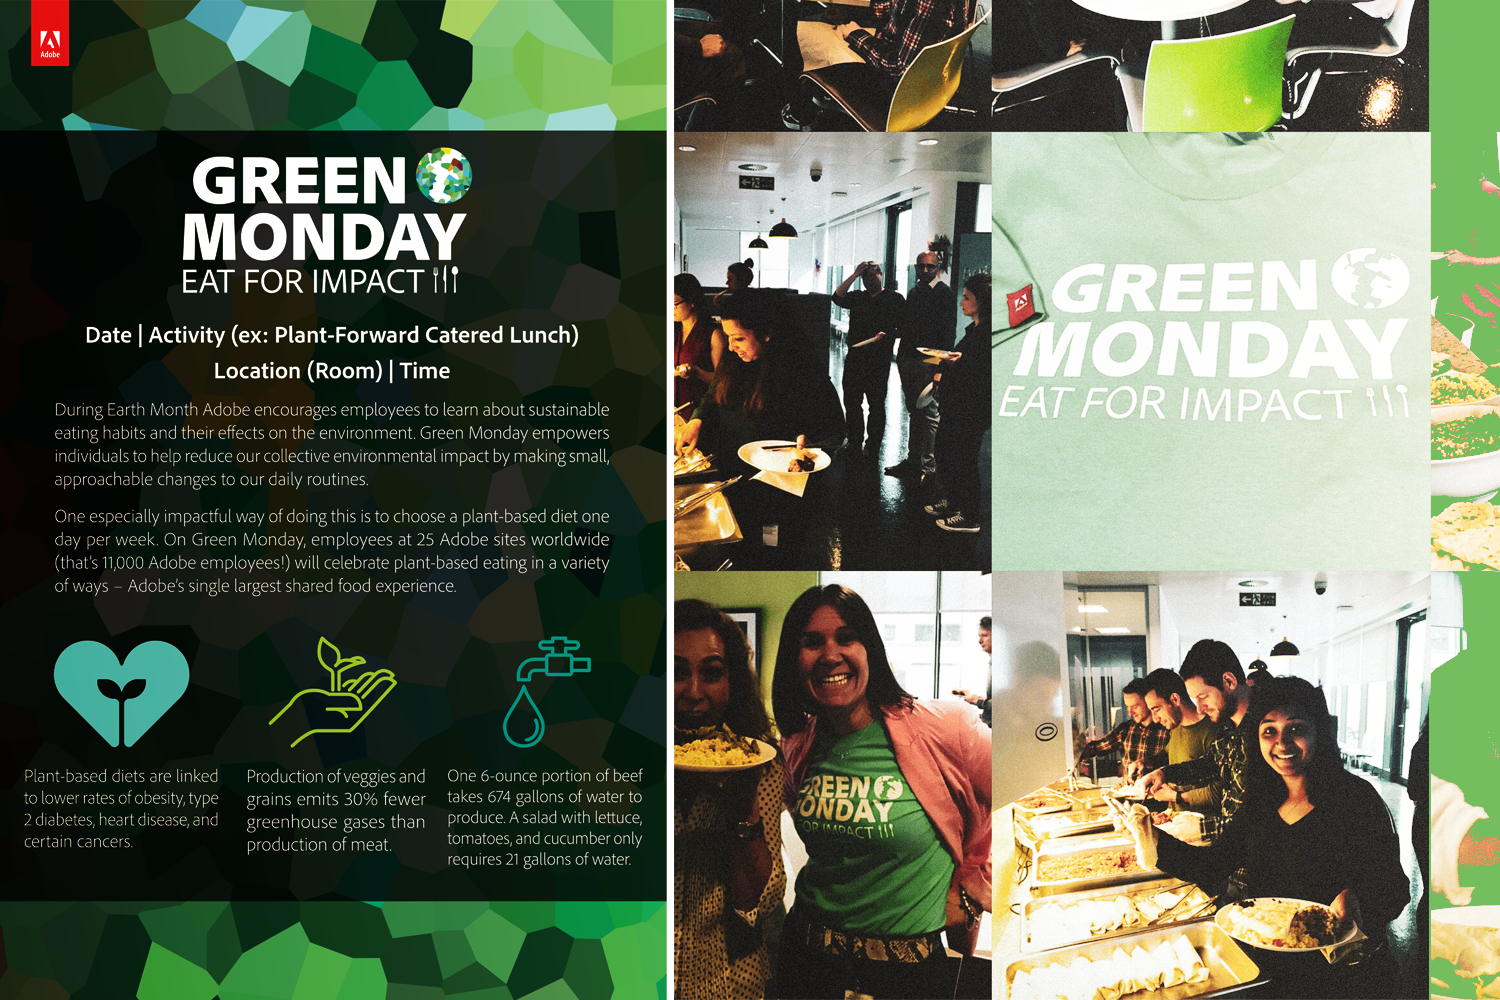 EVENT MARKETING COLLATERAL | EVENT SITE IMAGERY